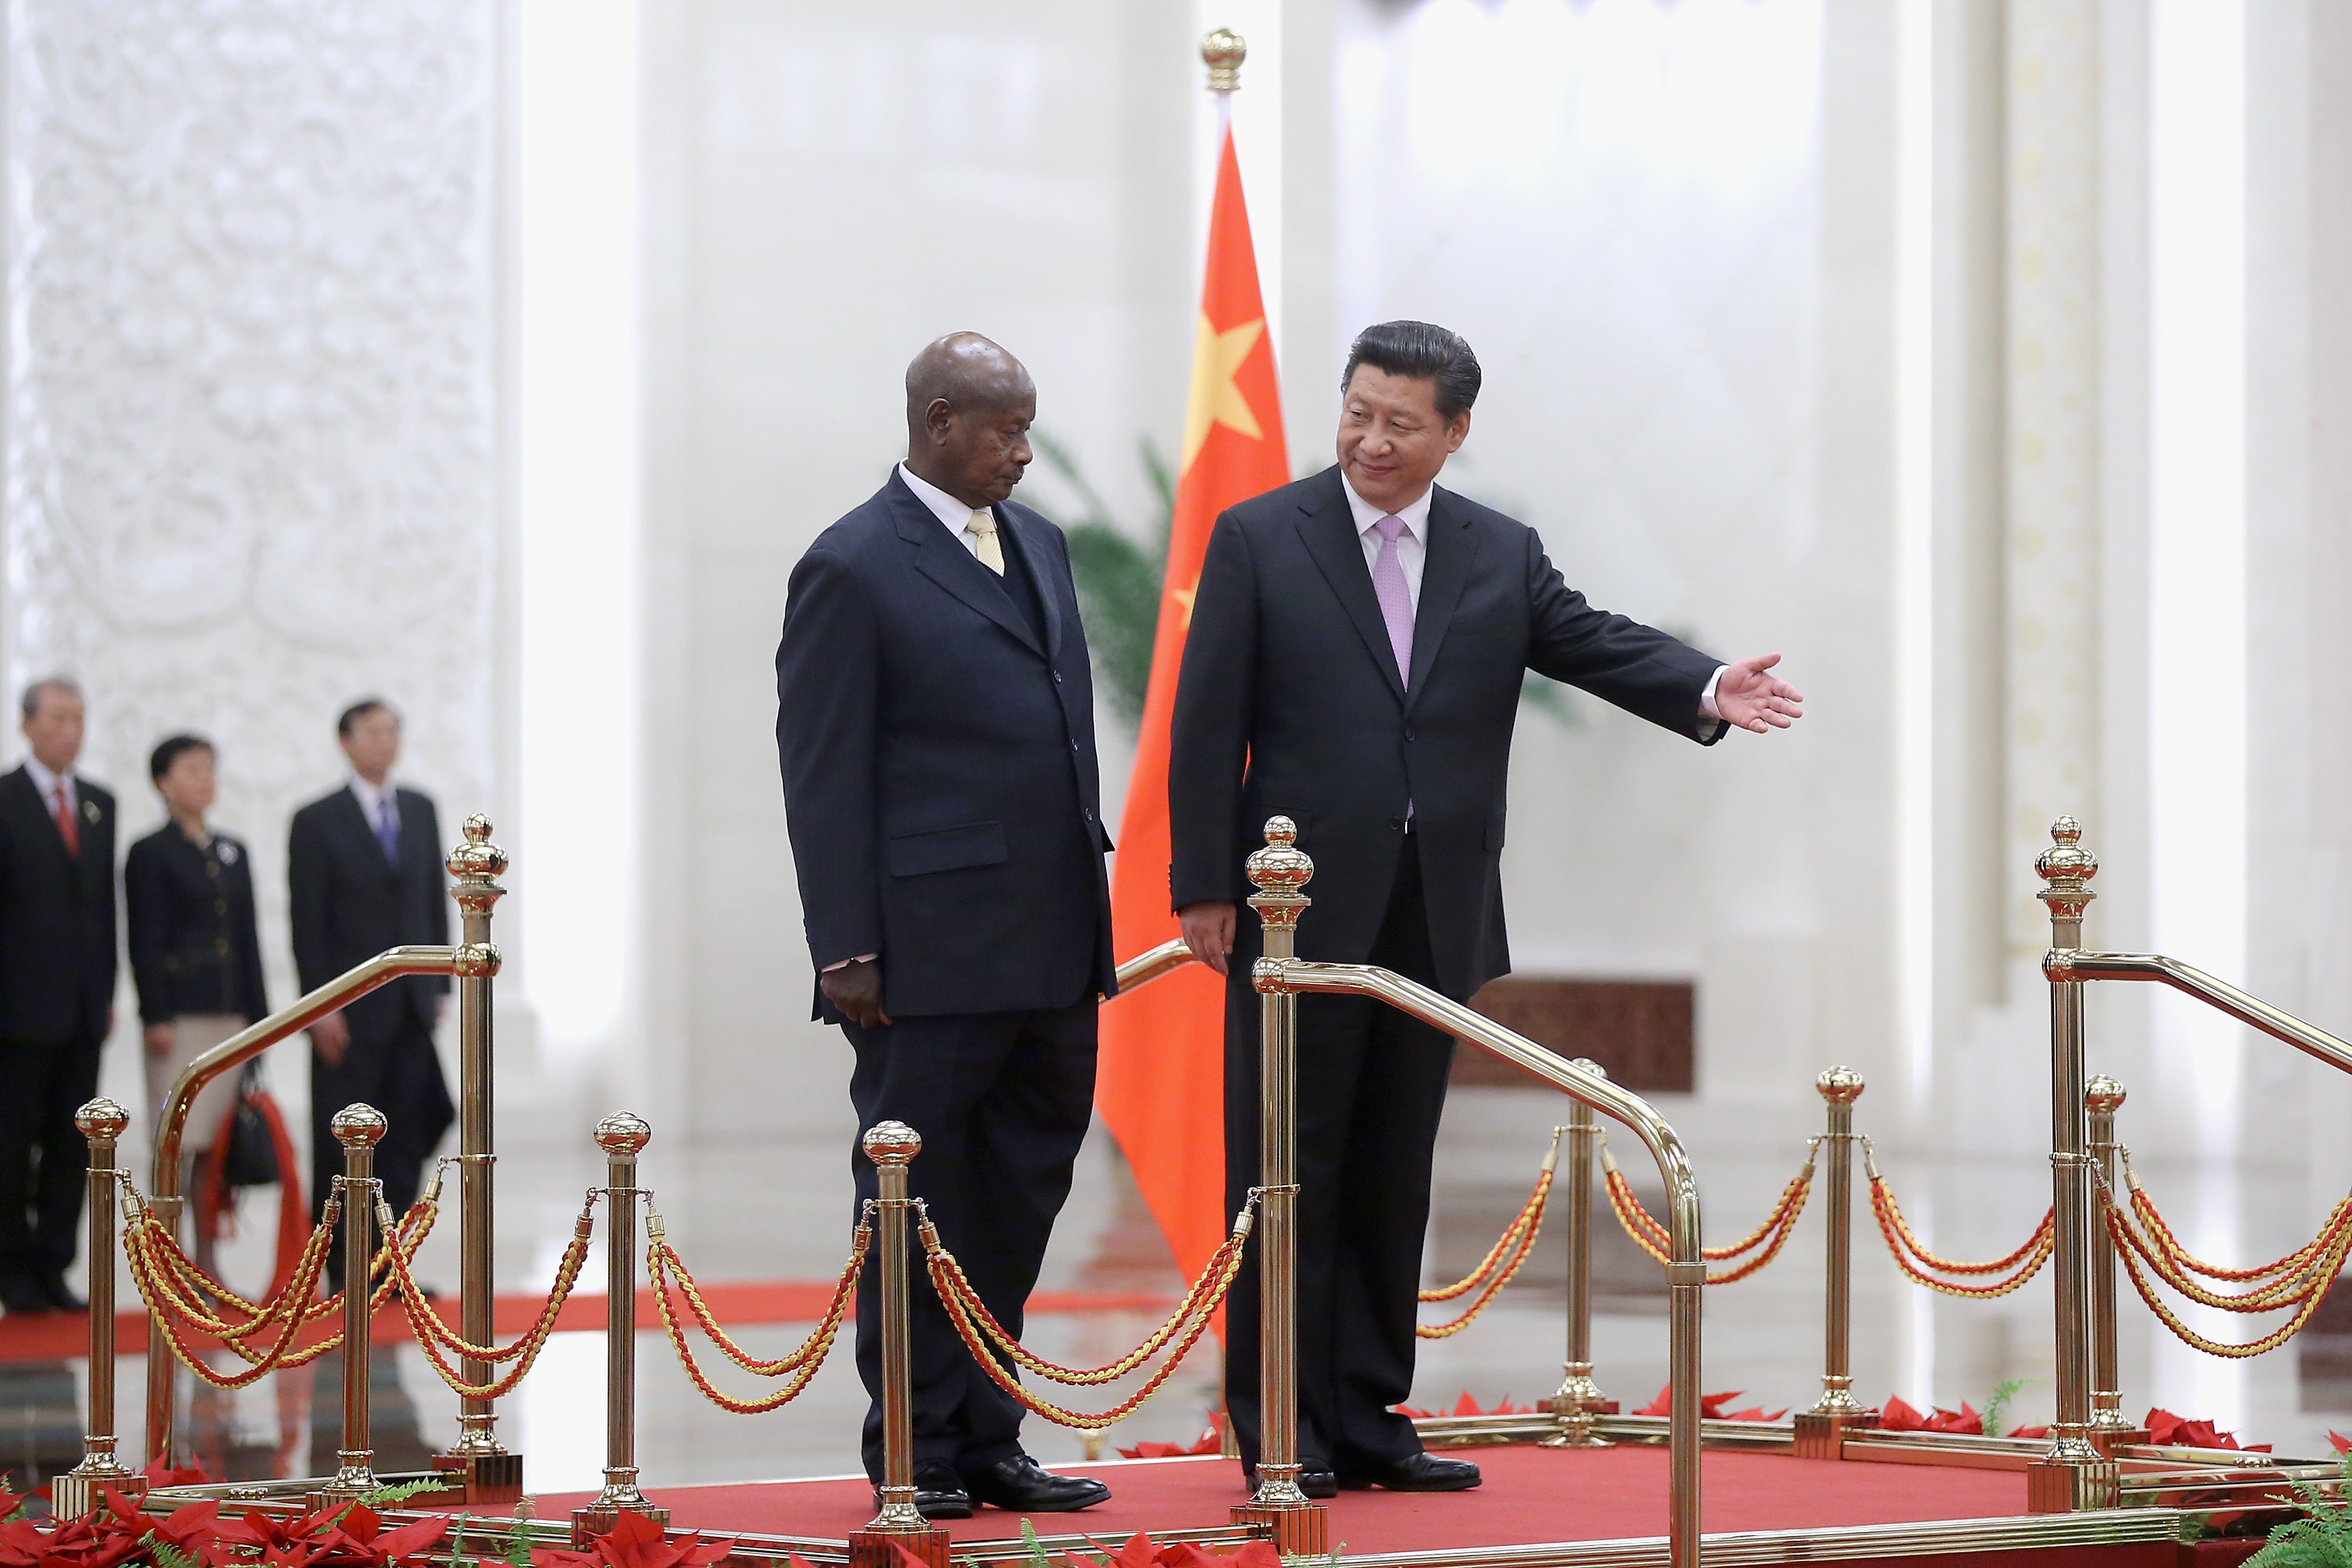 Chinese President Xi Jinping (R) invites Ugandan President Yoweri Kaguta Museveni (L) to view an honour guard during a welcoming ceremony inside the Great Hall of the People on March 31, 2015 in Beijing, China. (Photo by Feng Li/Getty Images)